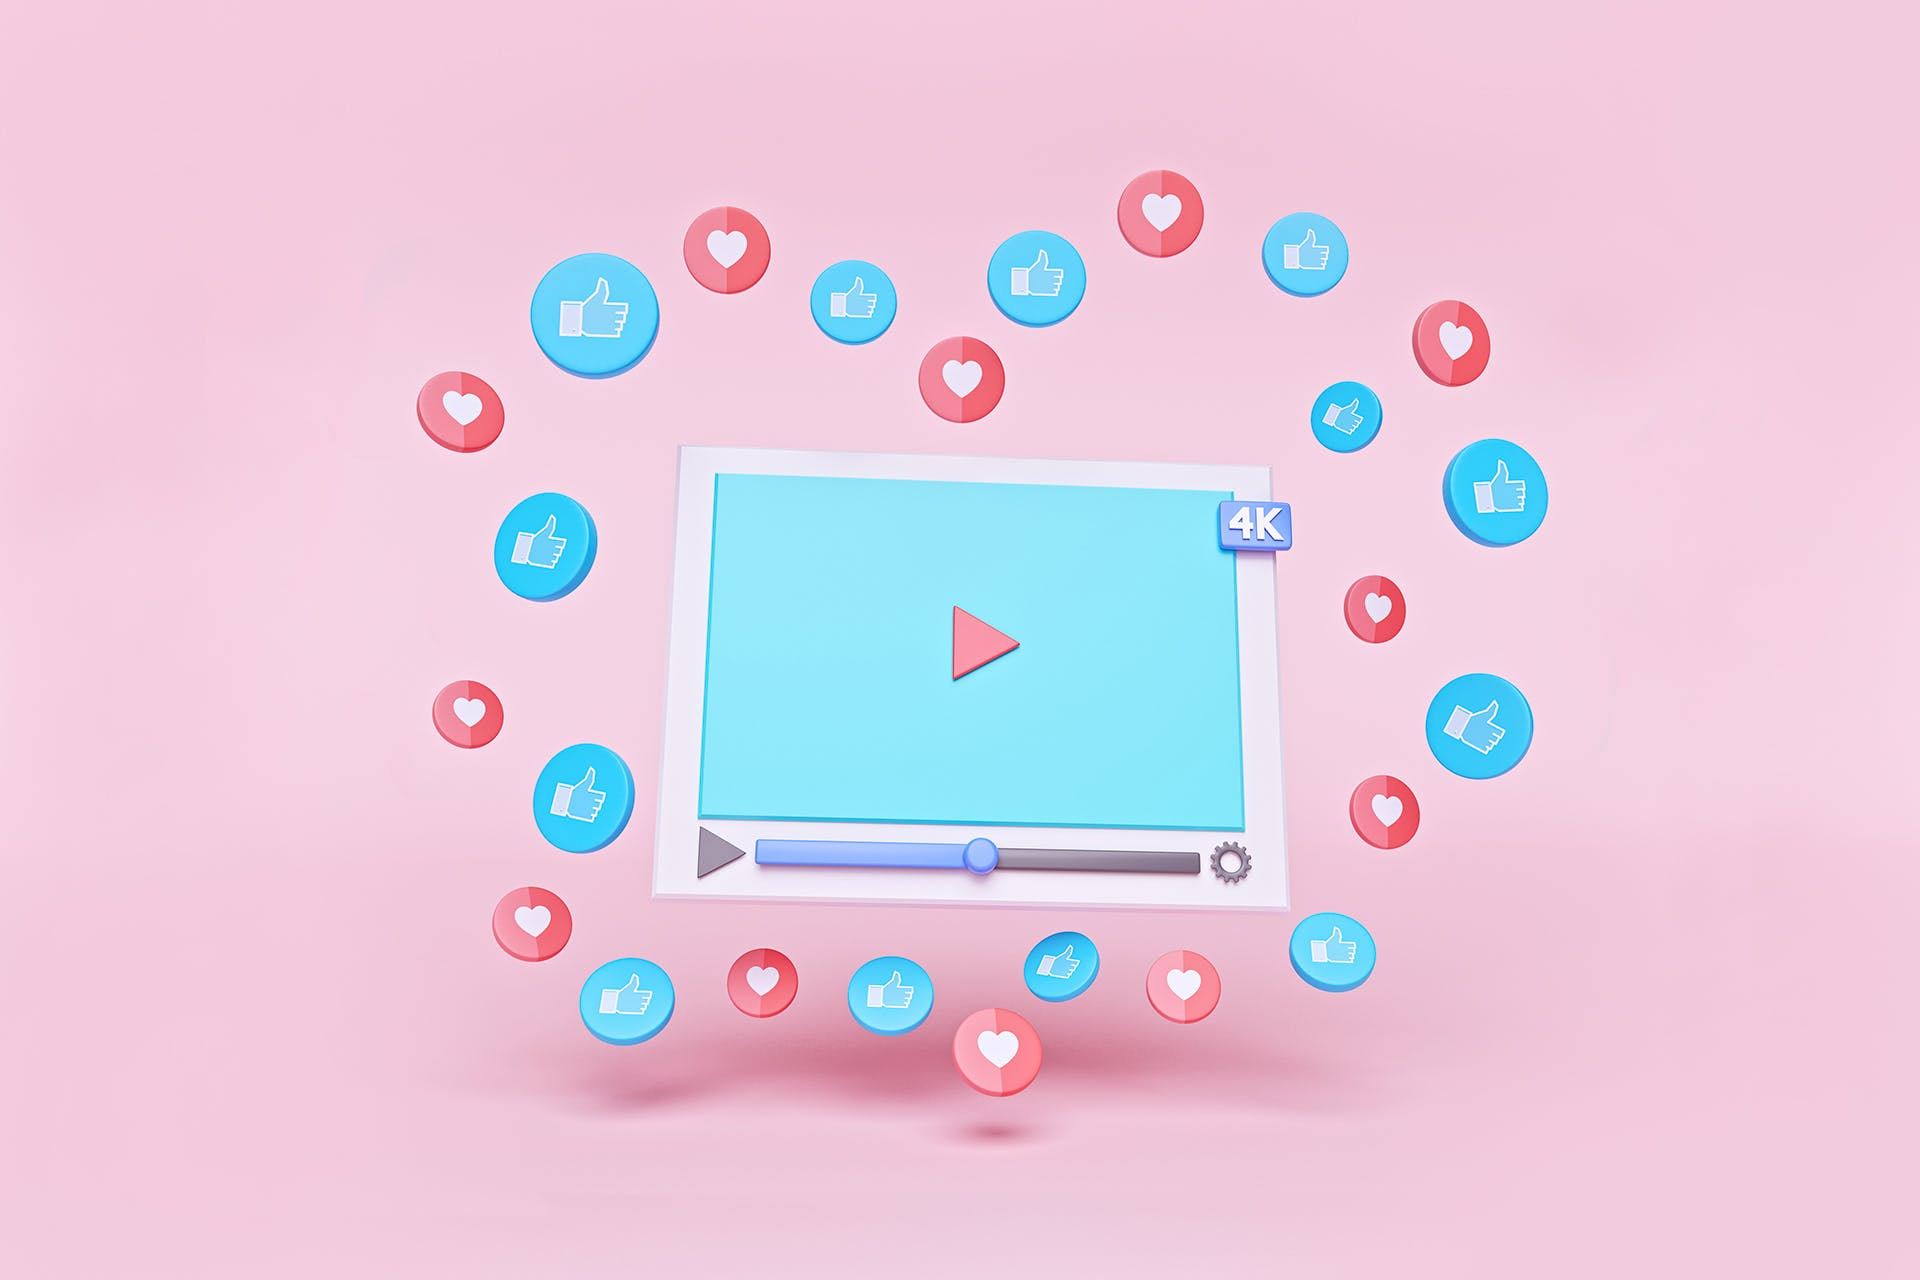 """An icon of a YouTube video player with icons of hearts and """"Likes"""" floating around the video in a heart-like shape. This is the type of engagement most marketers dream their YouTube video marketing strategy will generate."""